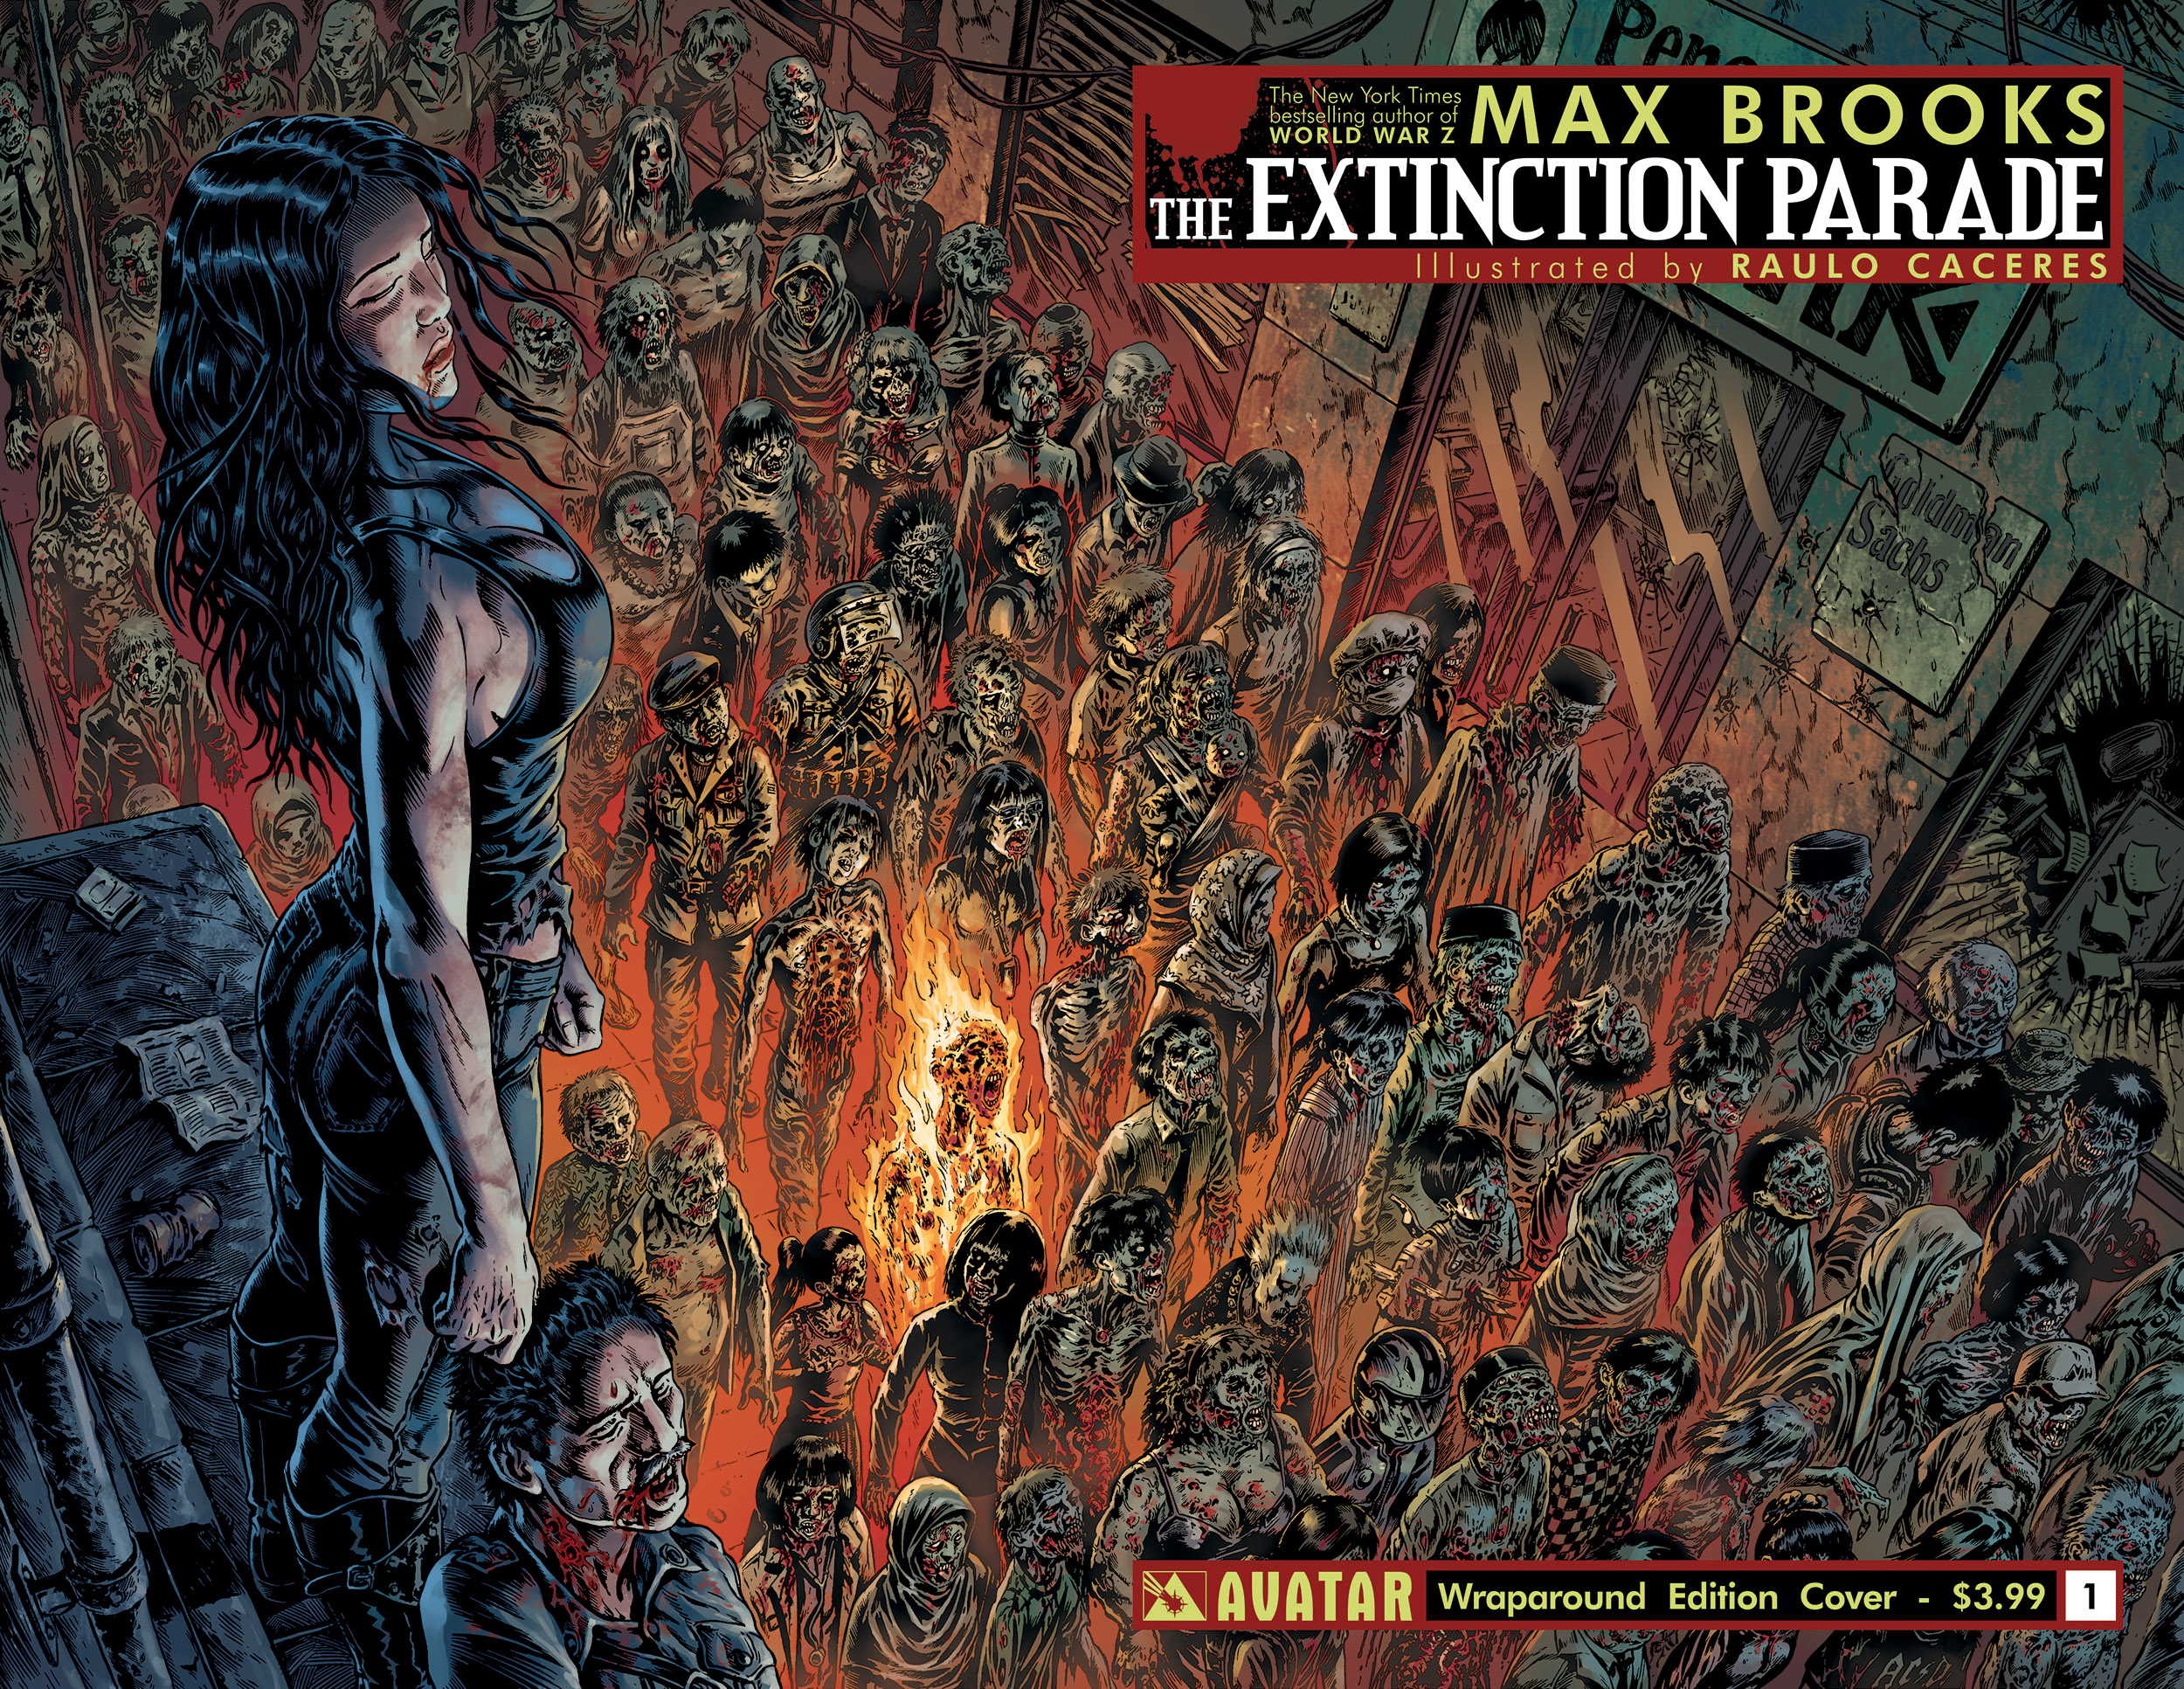 Extinction parade a new comic from world war z creator max brooks